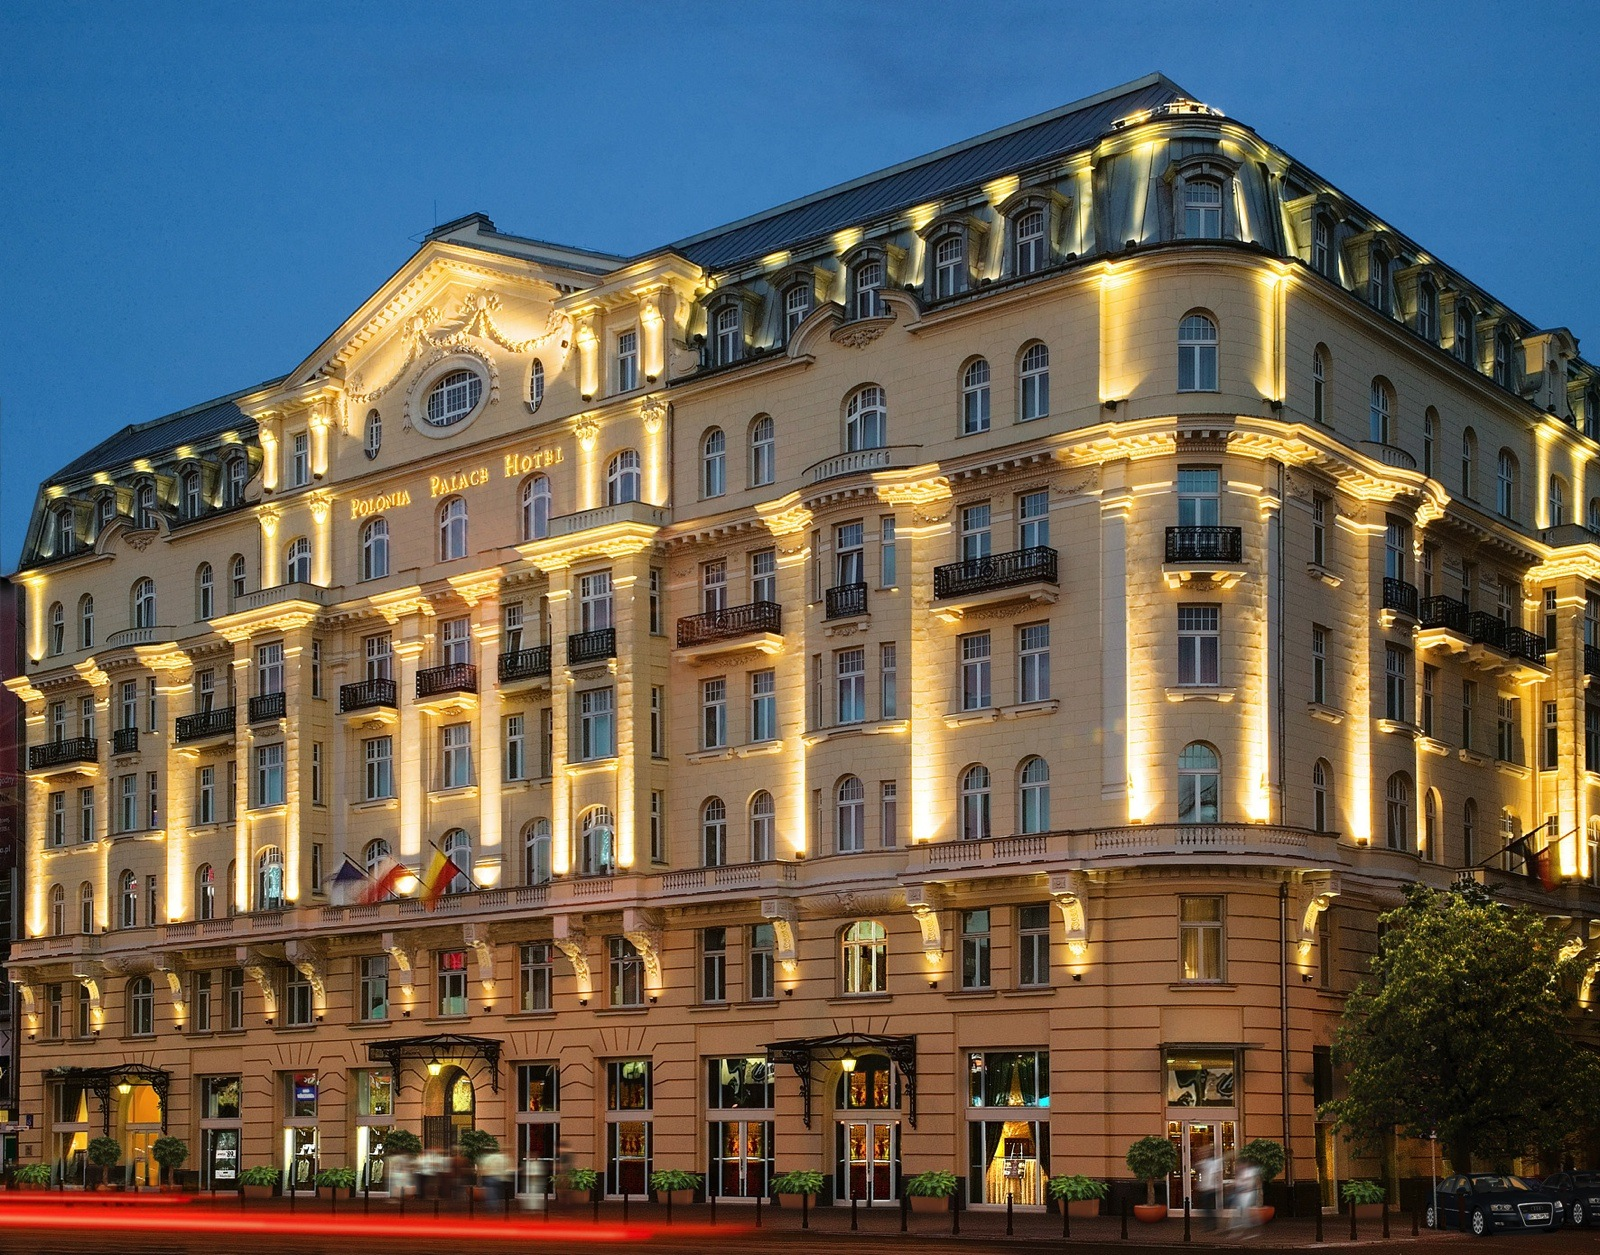 Polonia-Palace-Hotel-Warsaw